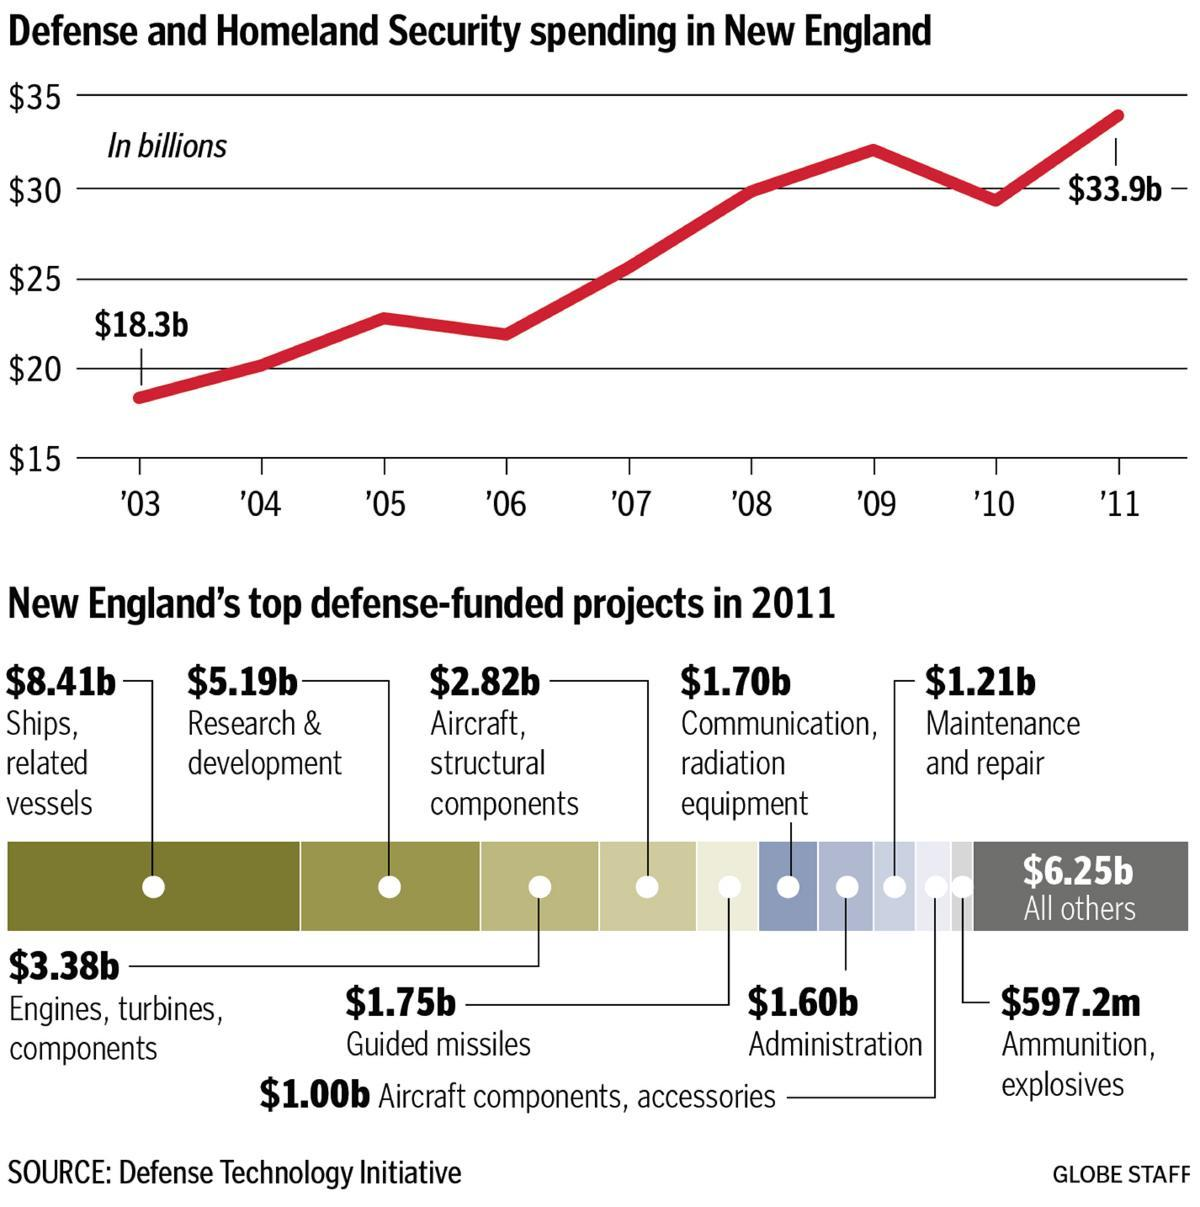 Defense cuts due to hit Mass. economy hard  The defense sector could lose 30,000 jobs because of massive military budget cuts that are set for next year, the author of a new study warned.